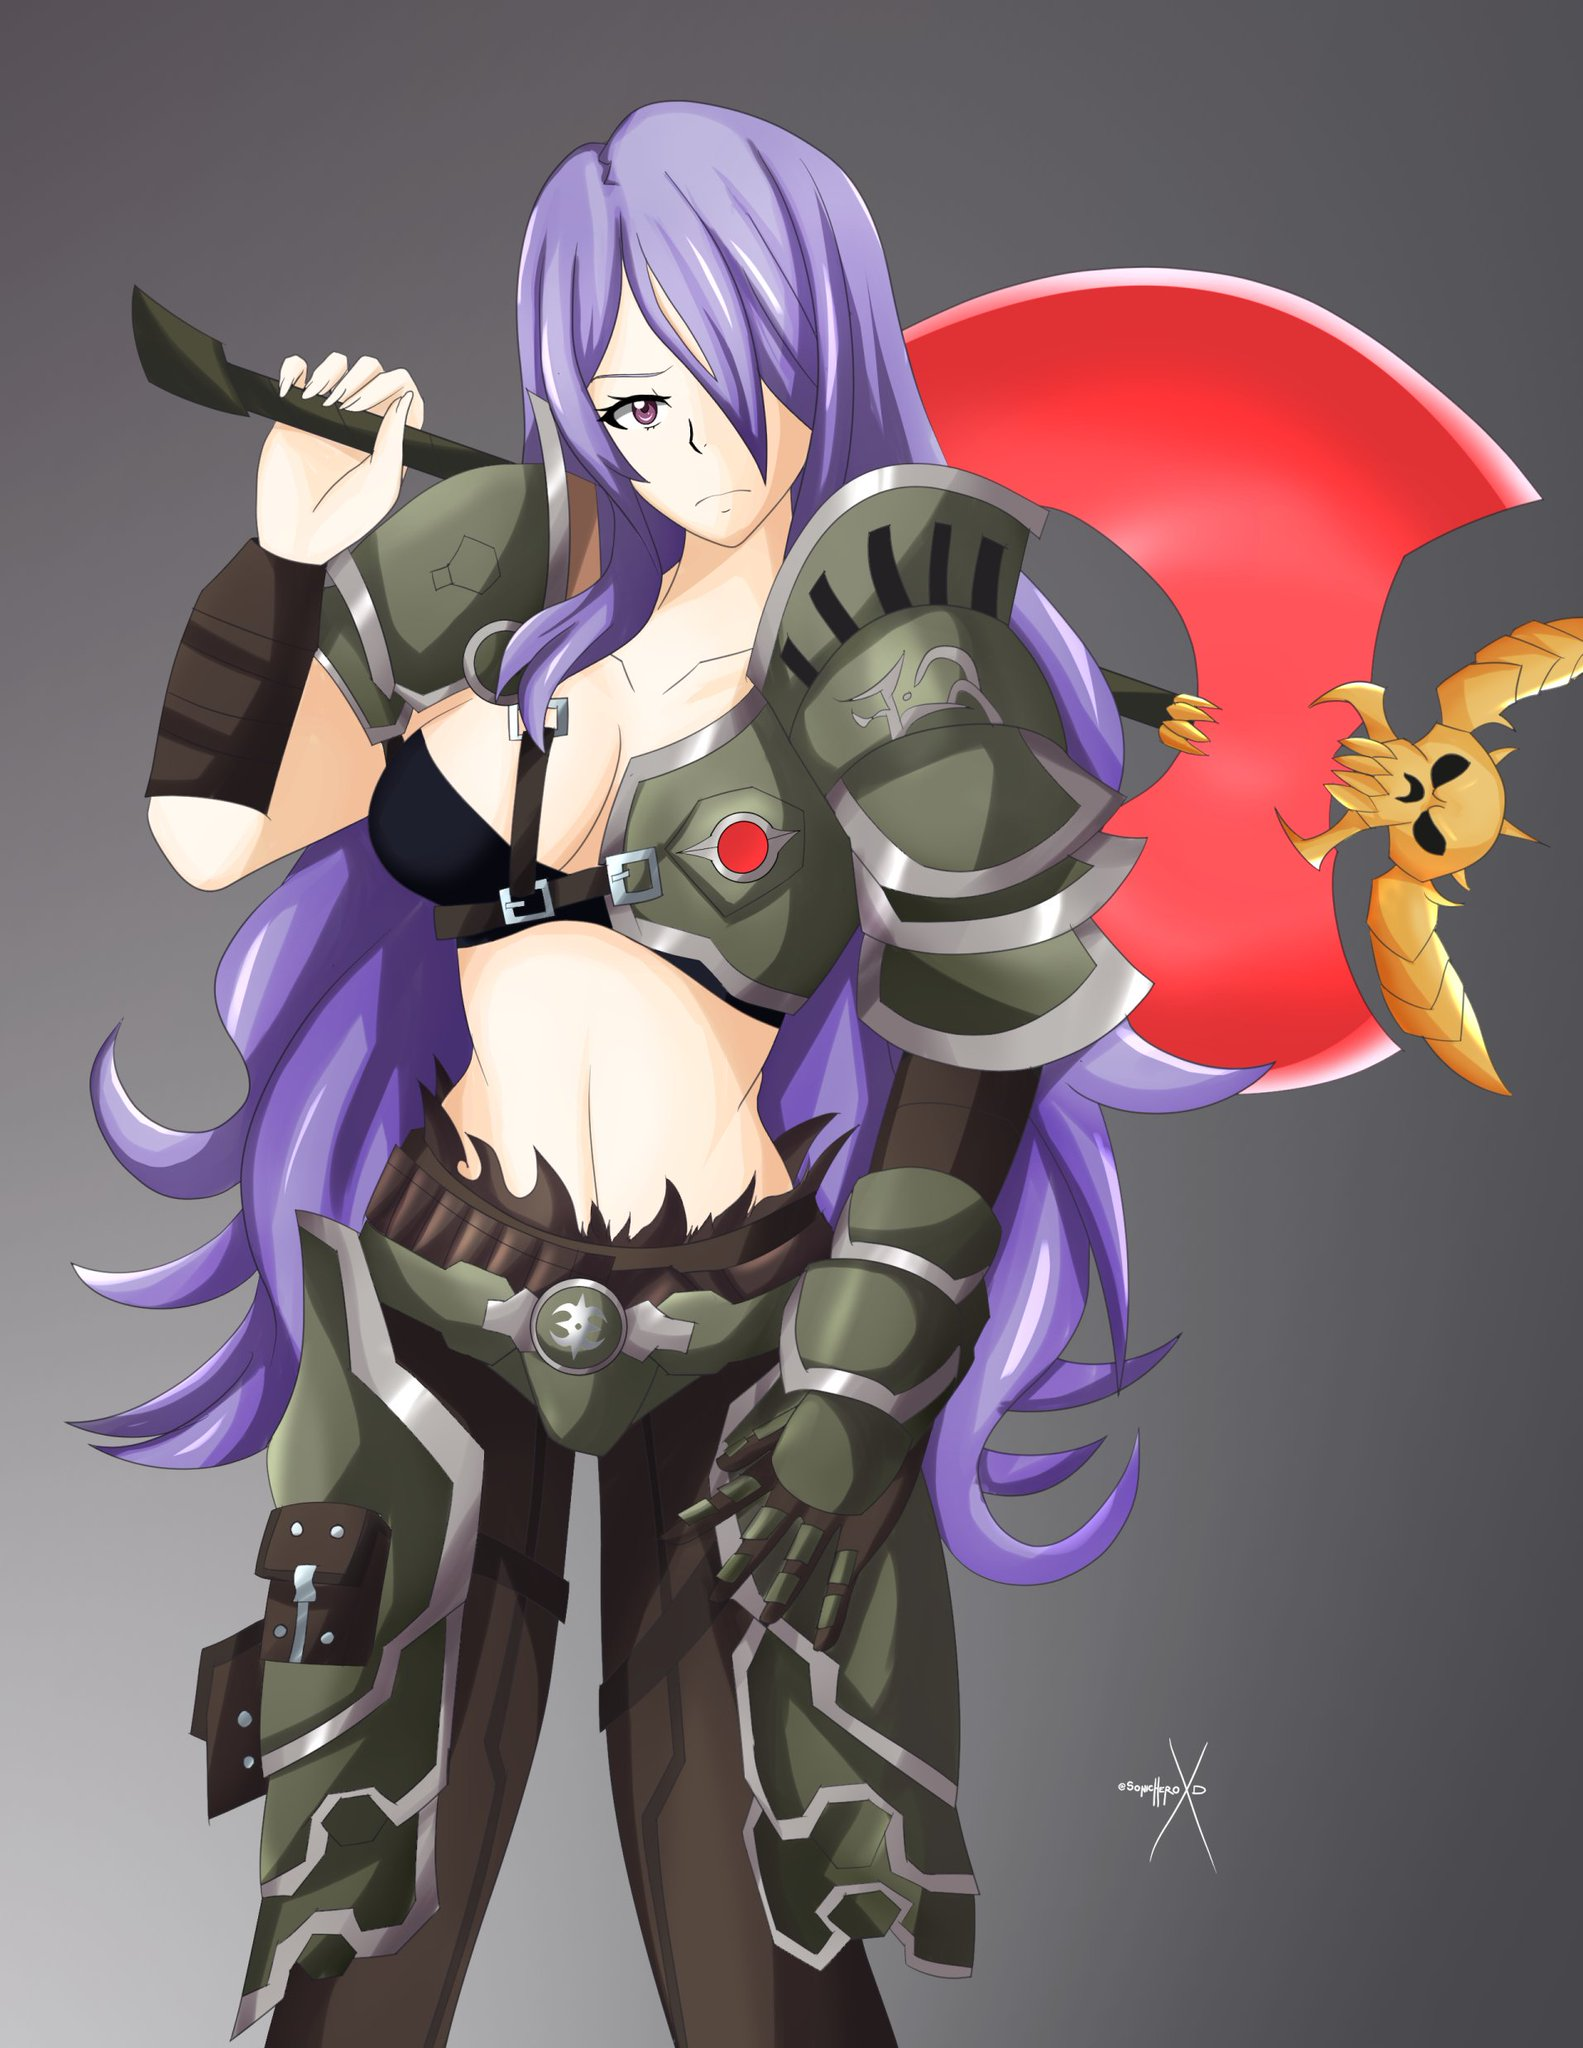 Sonicheroxd Comms Open On Twitter Marauder Camilla Fireemblemheroes Fireemblemfates Yes It S The Marauder Armor From Doom Eternal This Was Another Deviantart Commission Full Res Https T Co 648qfozbsy Https T Co Tybbbj9bhr